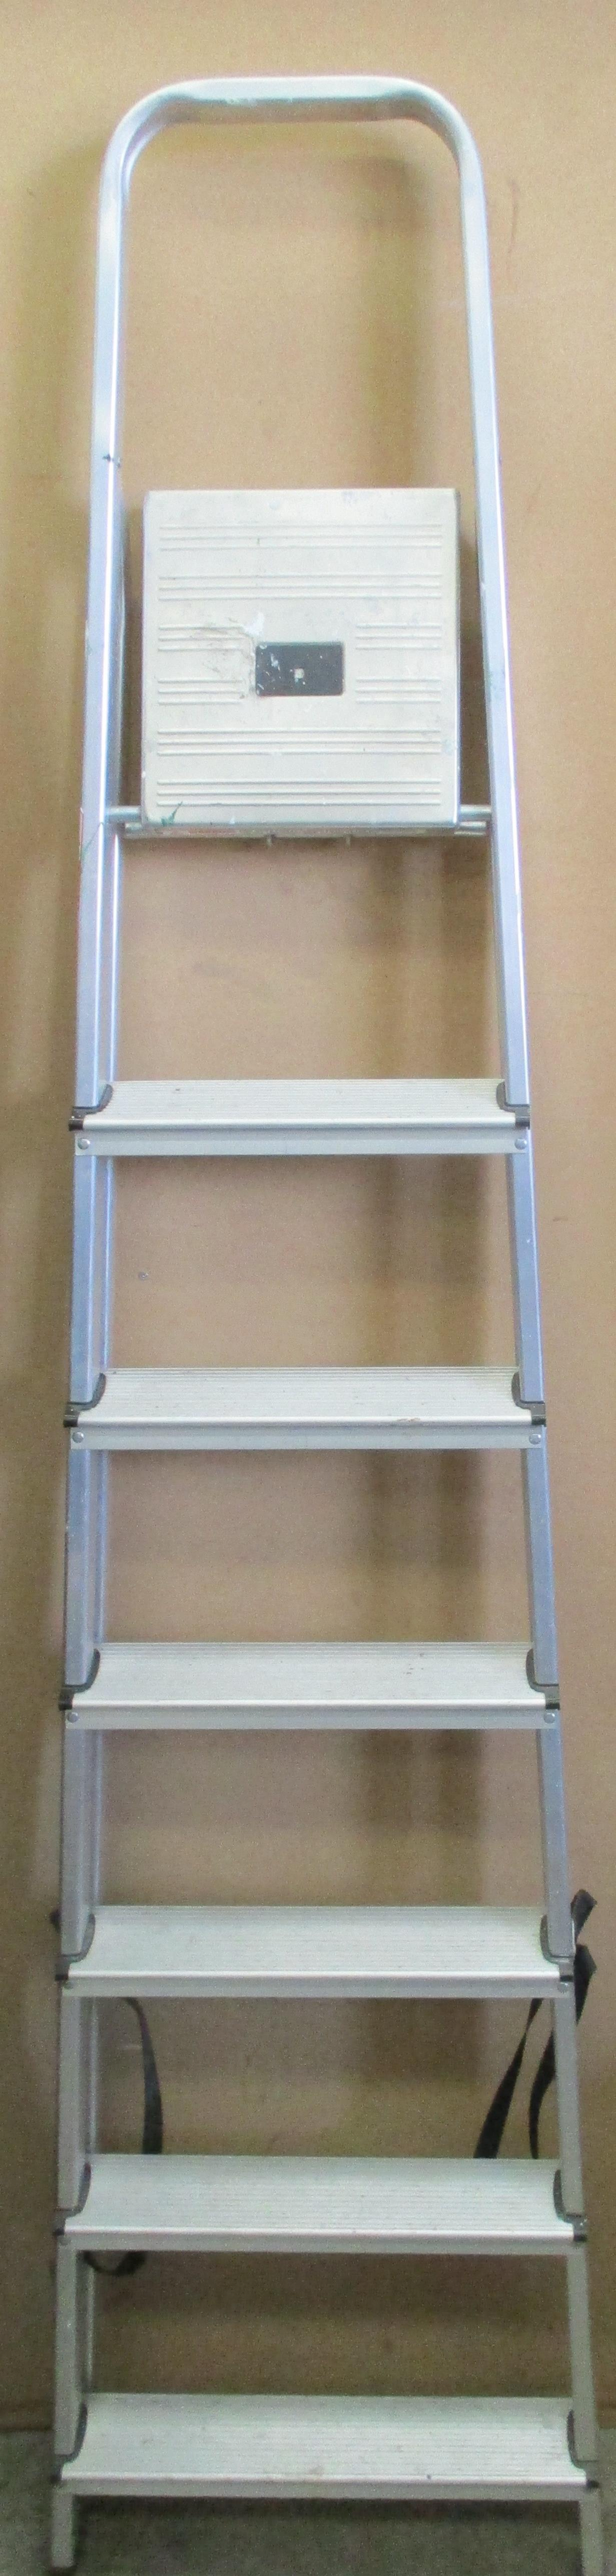 Lot 31 - A pair of Abru 6 step step ladders